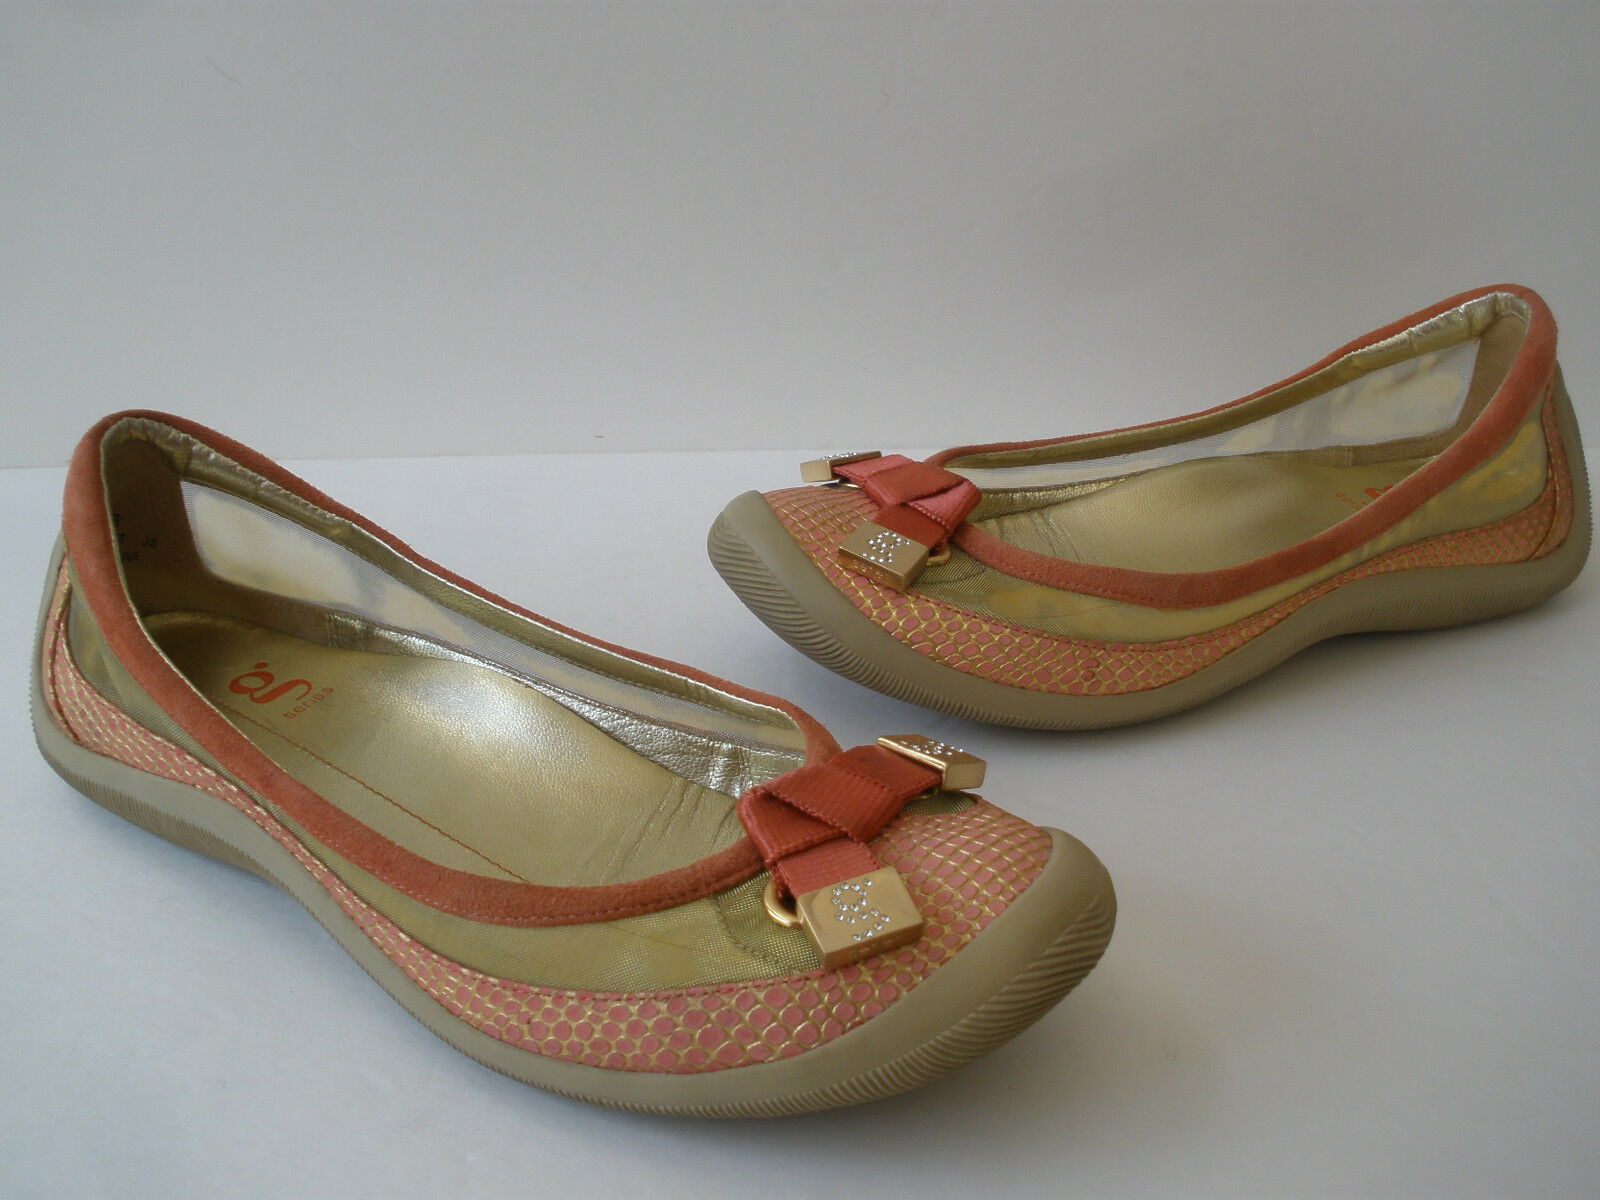 COLE HAAN G SERIES LAB FLATS US 5.5 HOT UNIQUE ONLY 1 ON EBAY VINTAGE